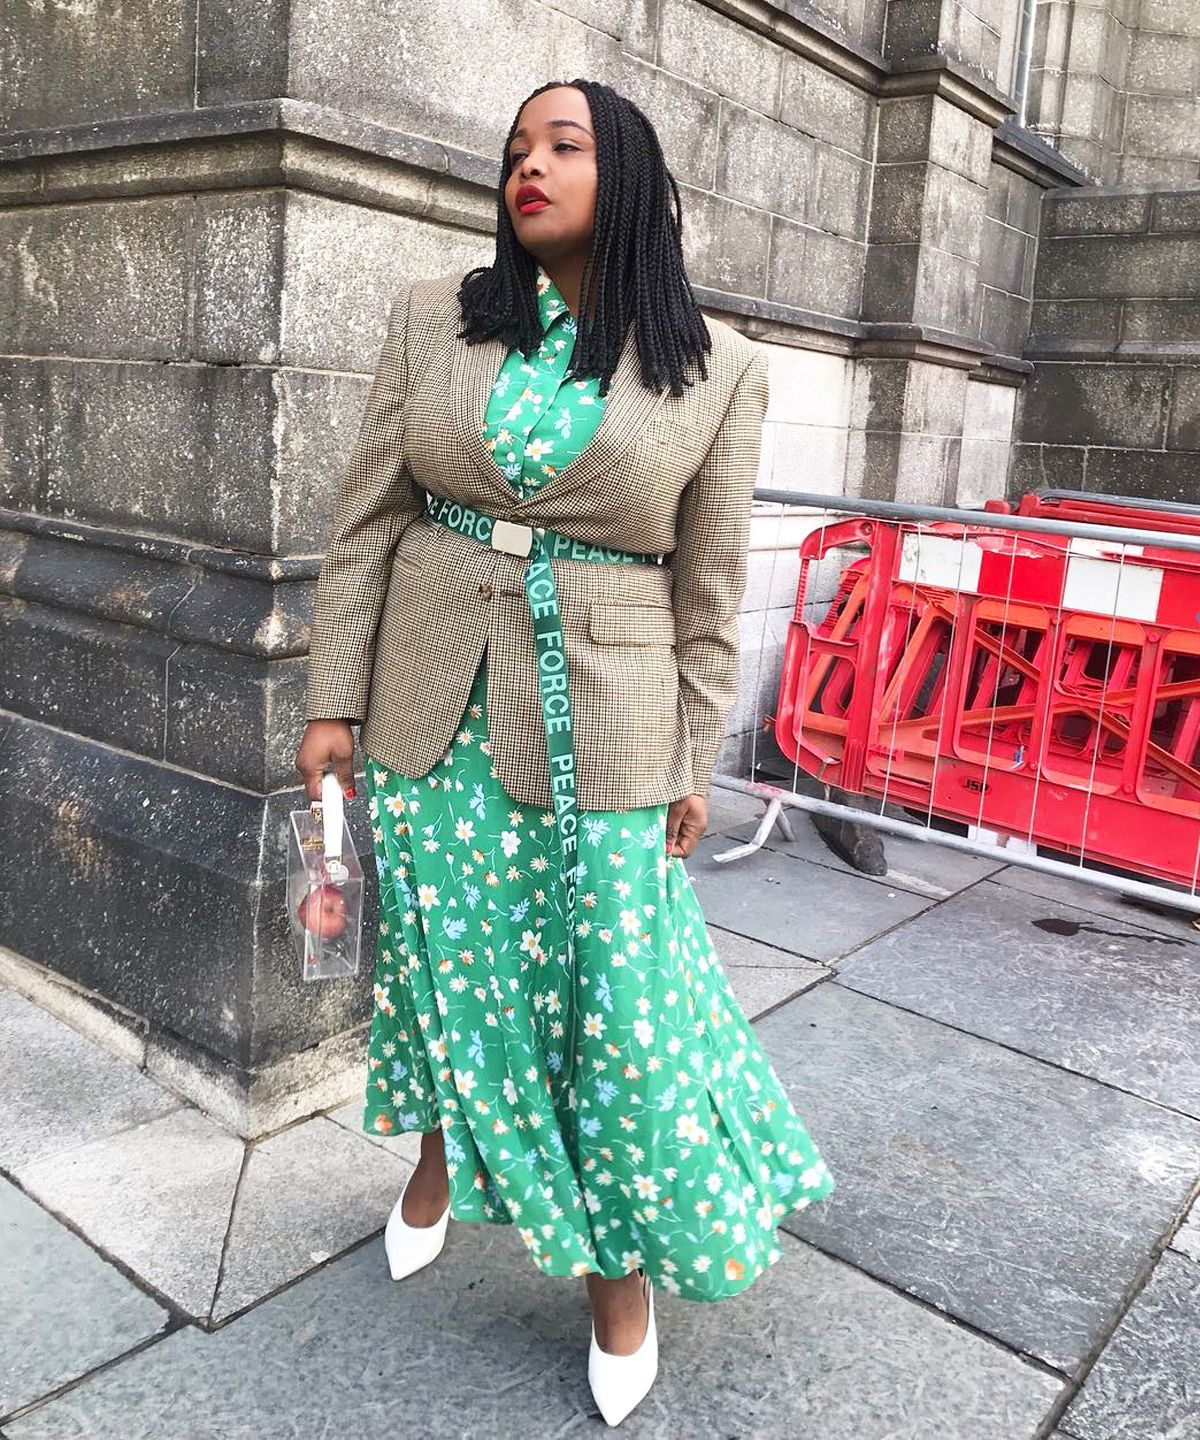 8 Tricks for Making Boring Outfits Look Spectacular